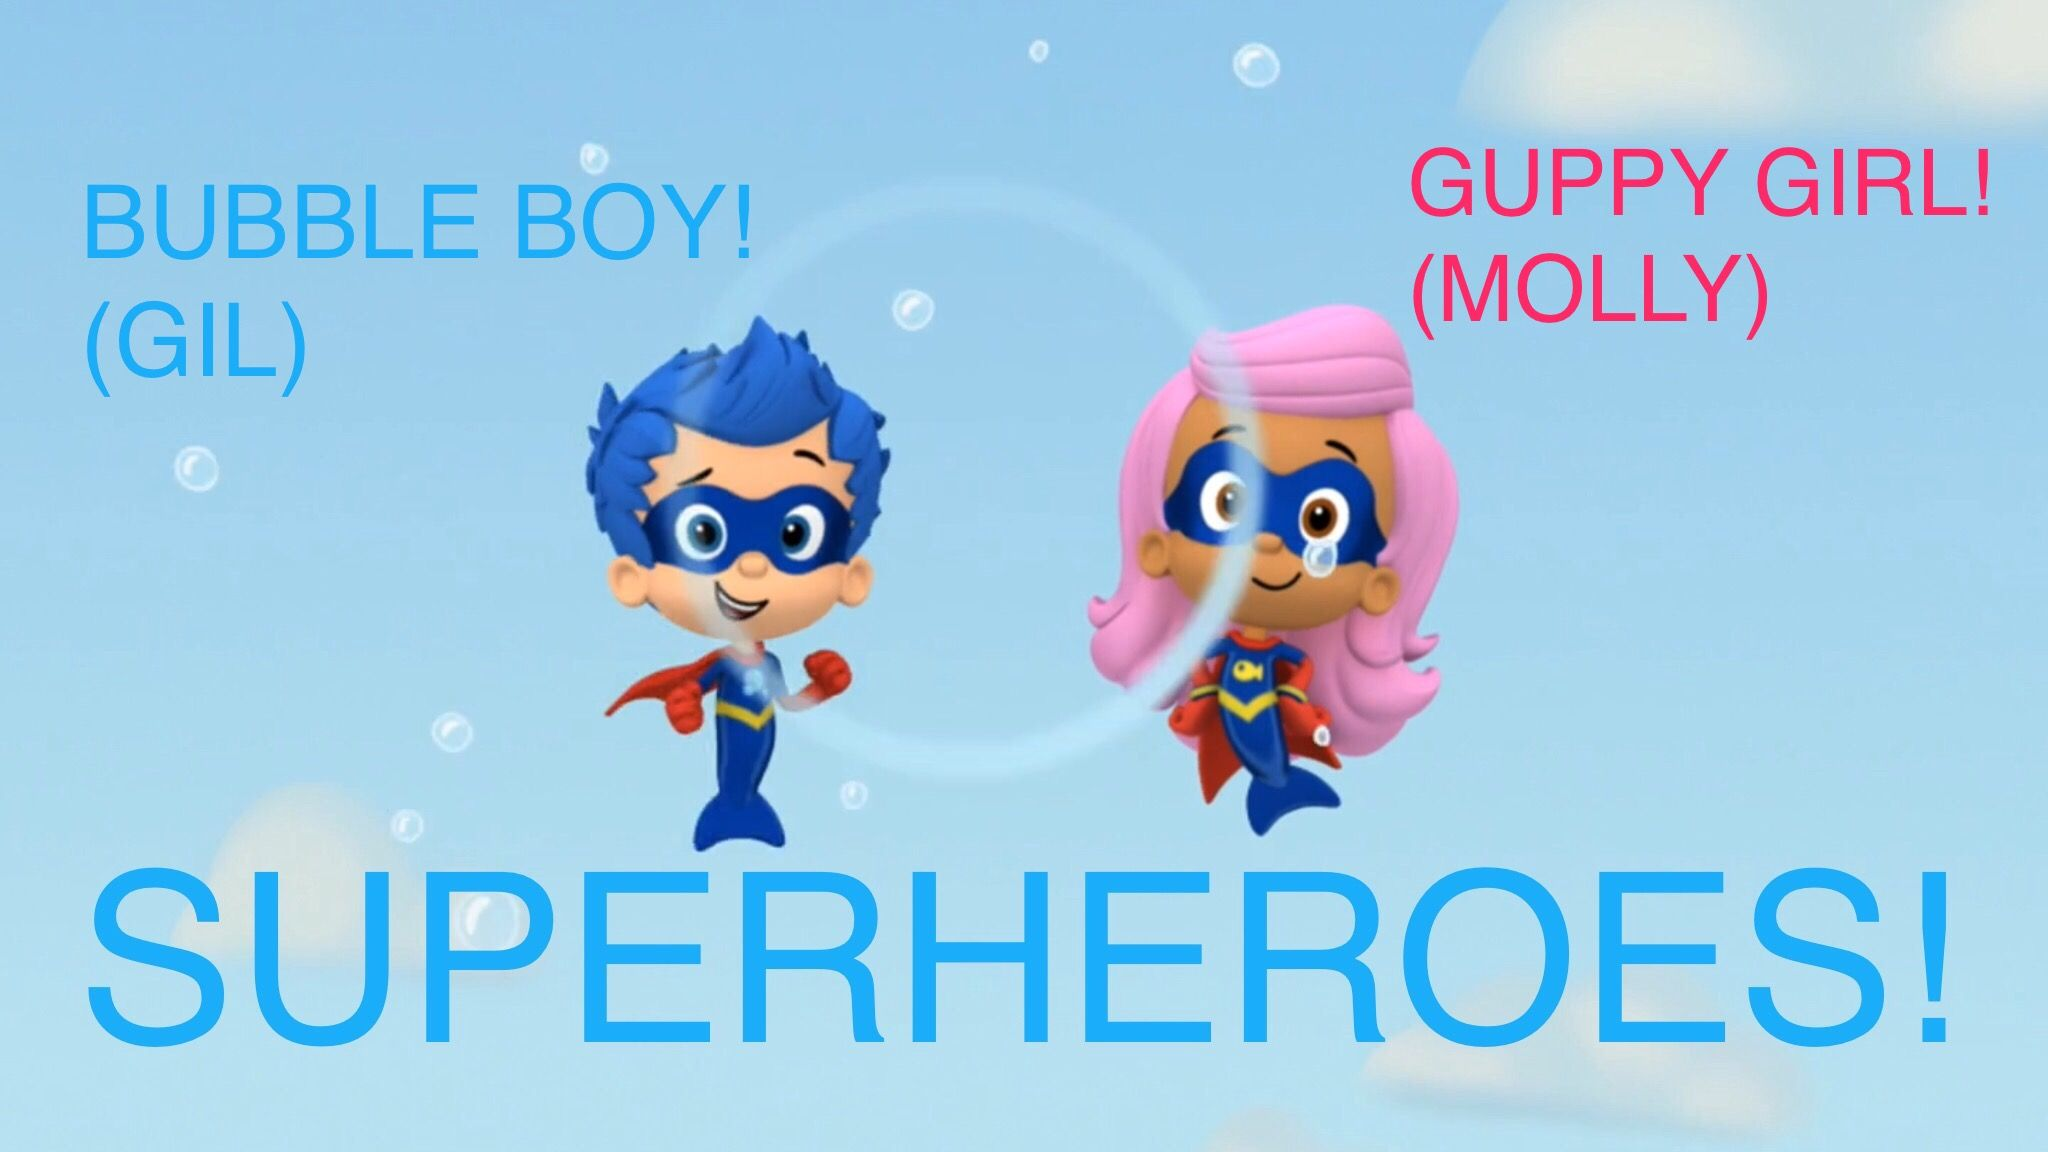 molly and gil u0027s superhero names are guppy and bubble boy